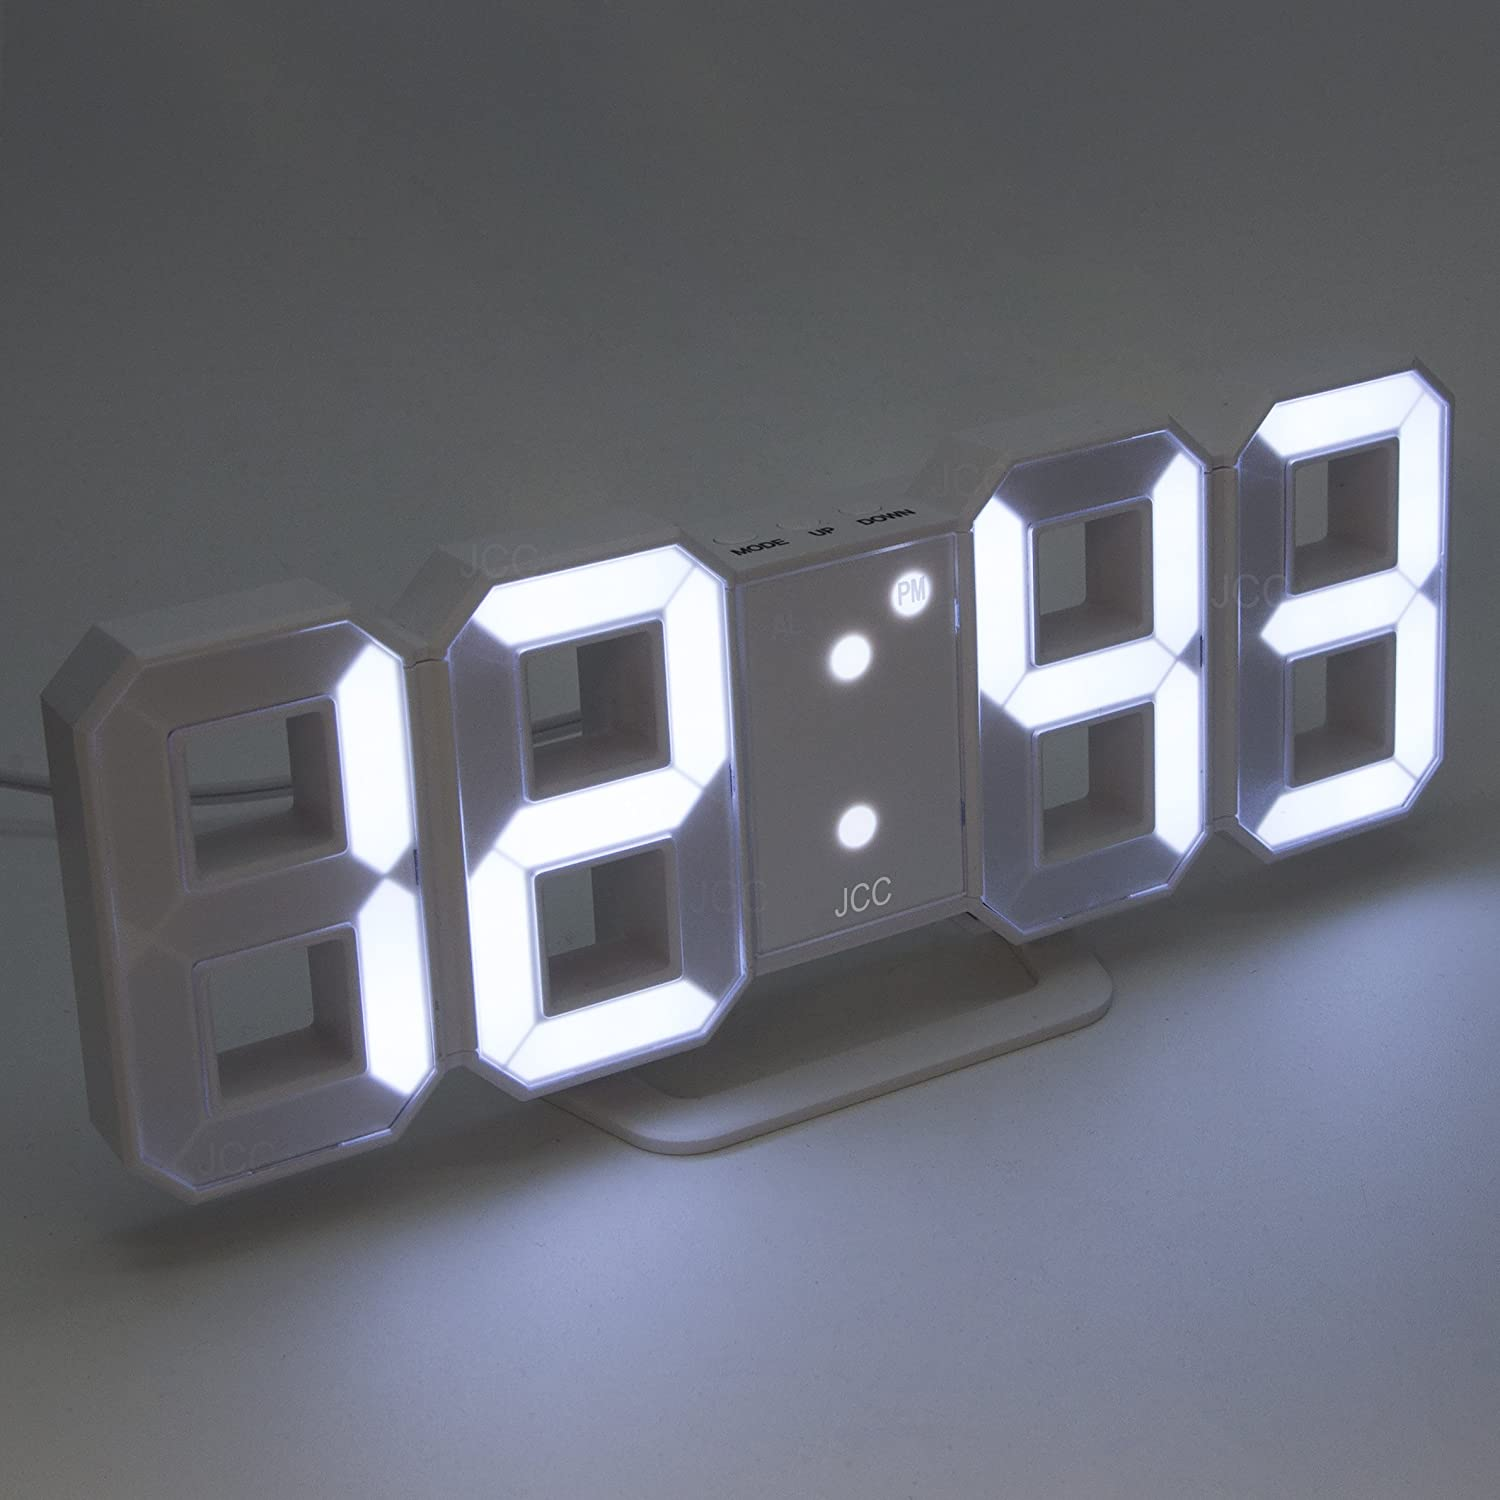 Large LED Digital Wall Clock with Countdown Timer Date 2412Hour